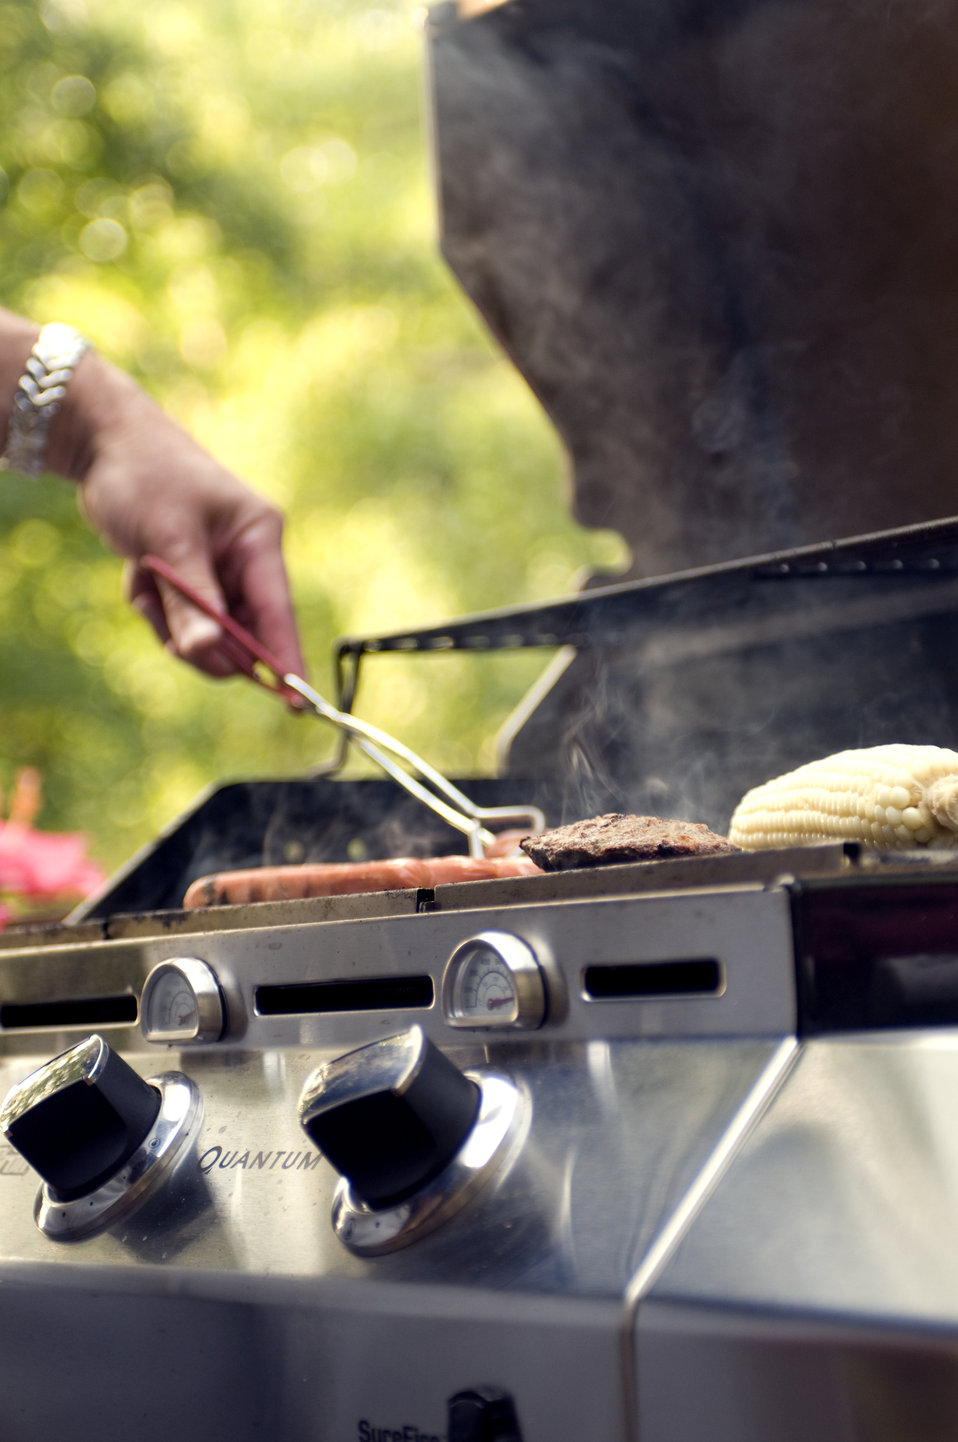 This image shows the grill, being used to thoroughly cook some hamburgers and hotdogs during an outdoor cookout.